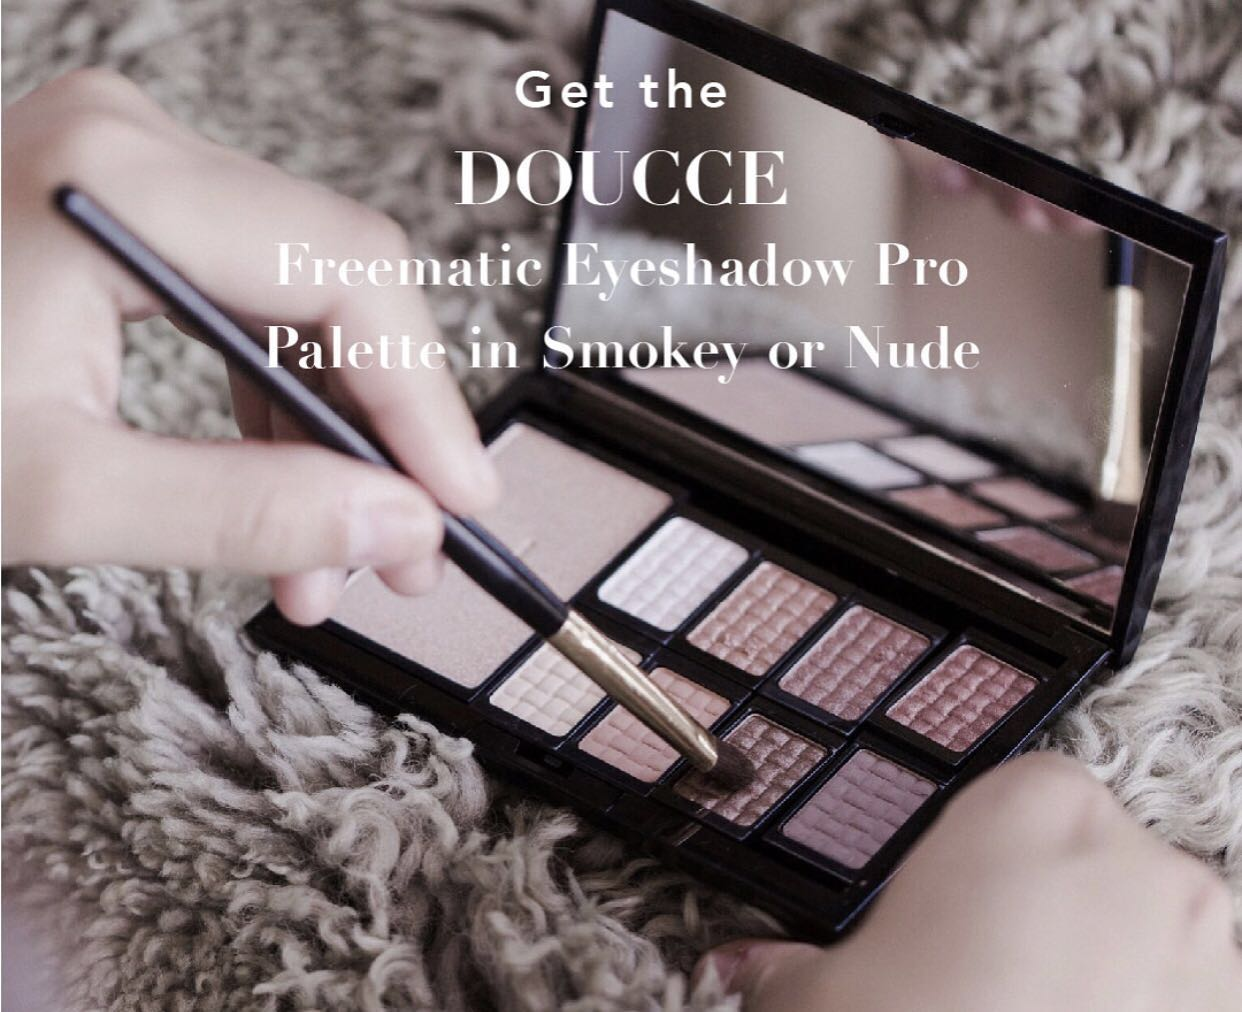 c7d1240fa8b Doucce Freematic Eyeshadow Palette, Health & Beauty, Makeup on Carousell